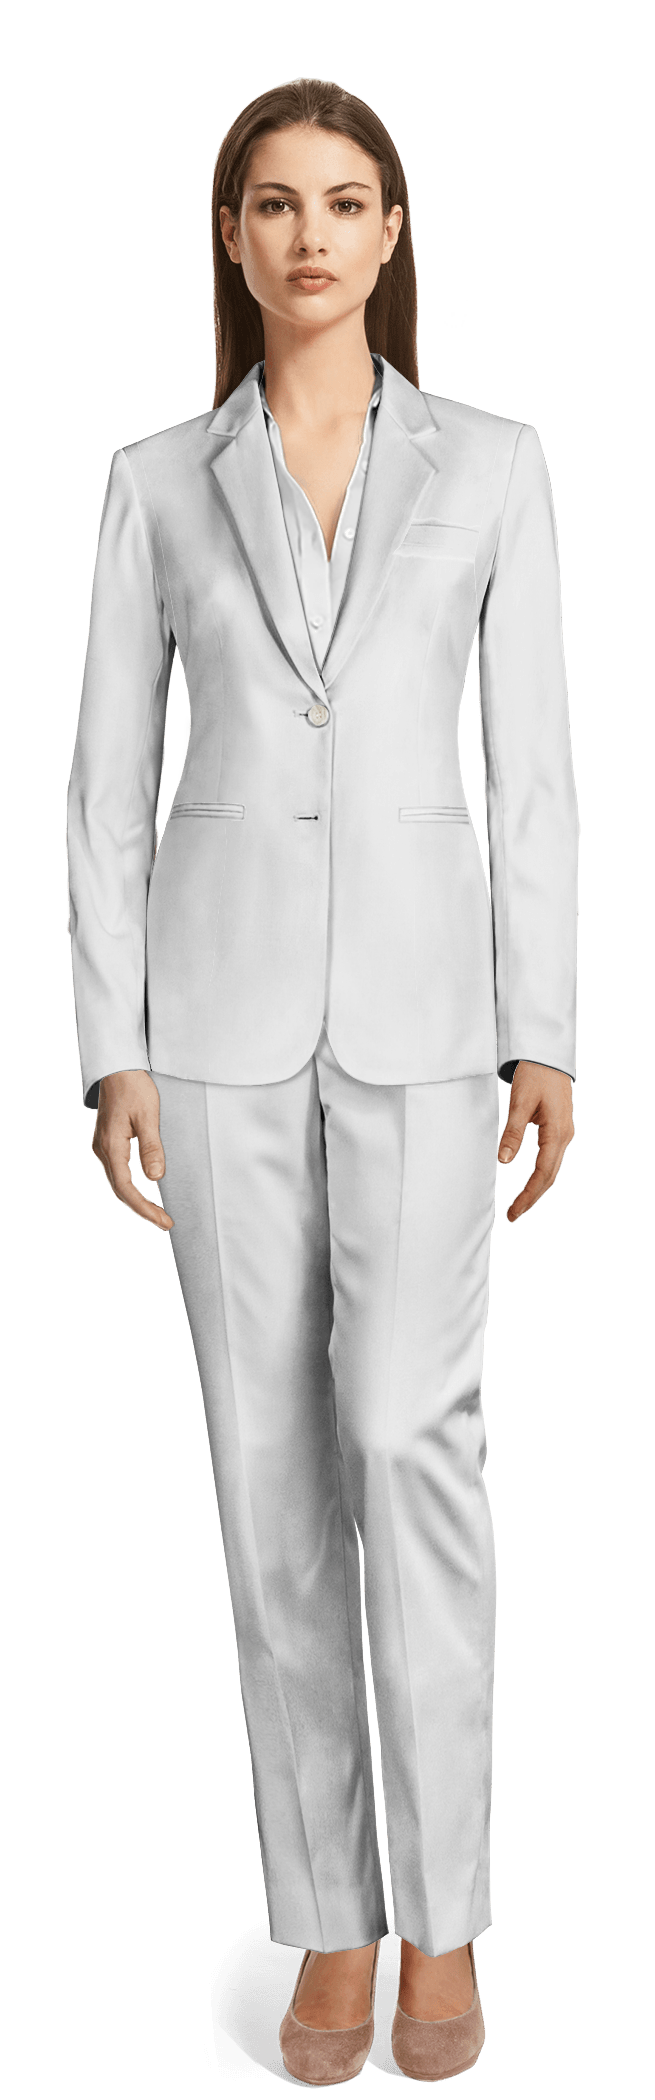 Women S White Suits Made To Measure Sumissura